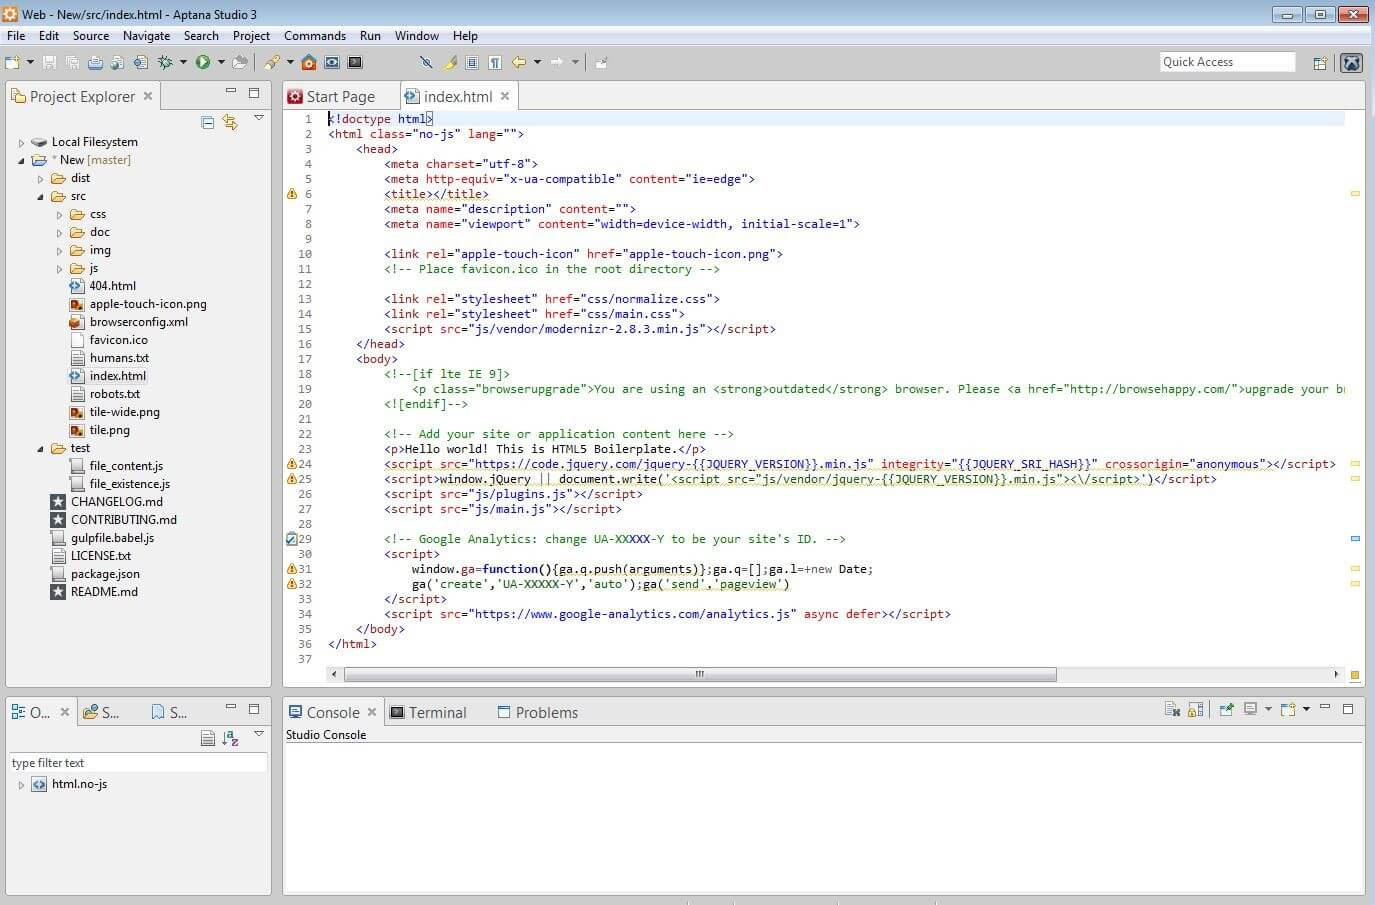 Dreamweaver alternatives: Open source solutions - 1&1 IONOS